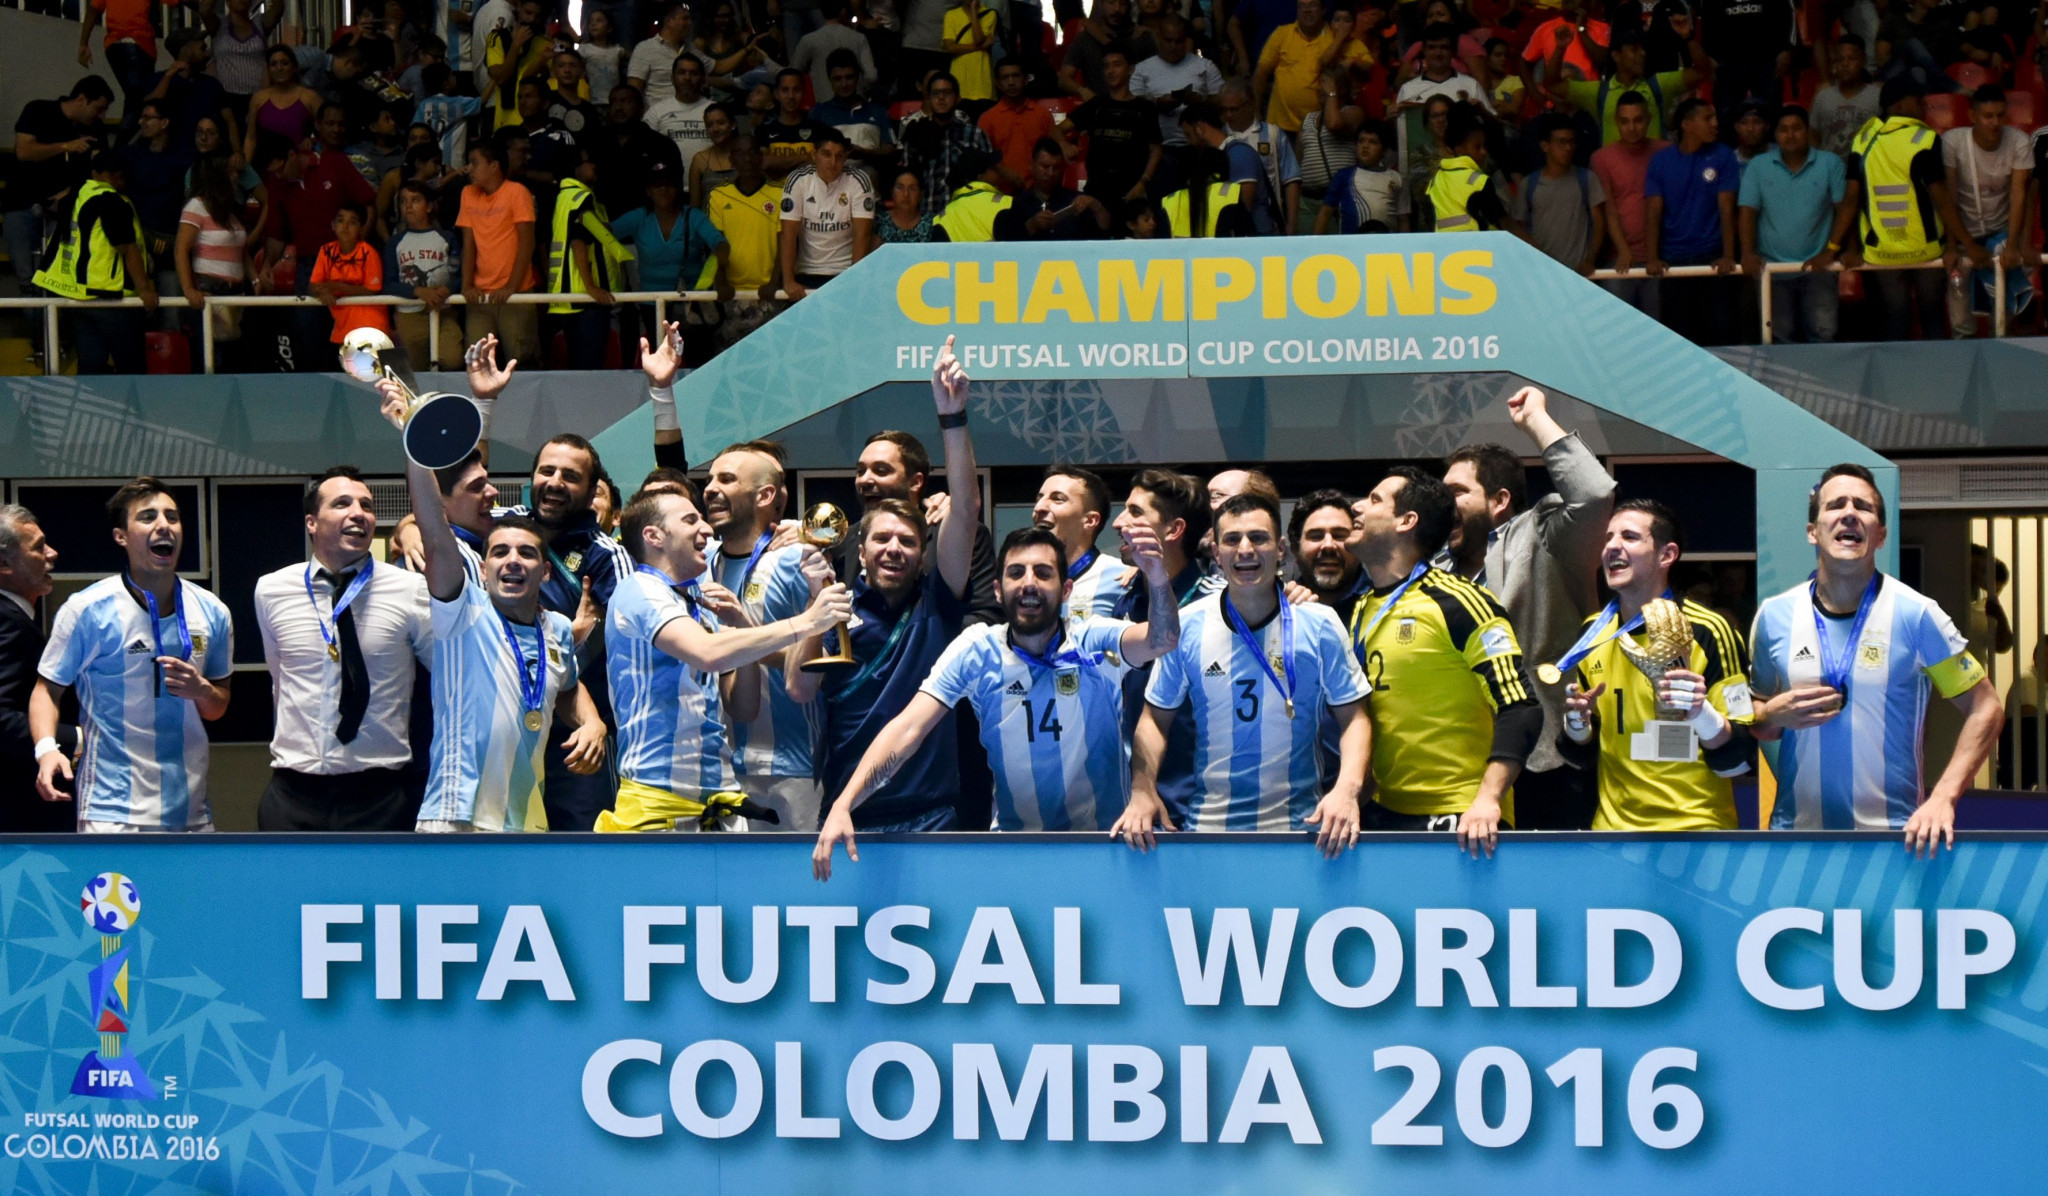 Defending champions Argentina edge through to FIFA Futsal World Cup semi-finals after shootout triumph